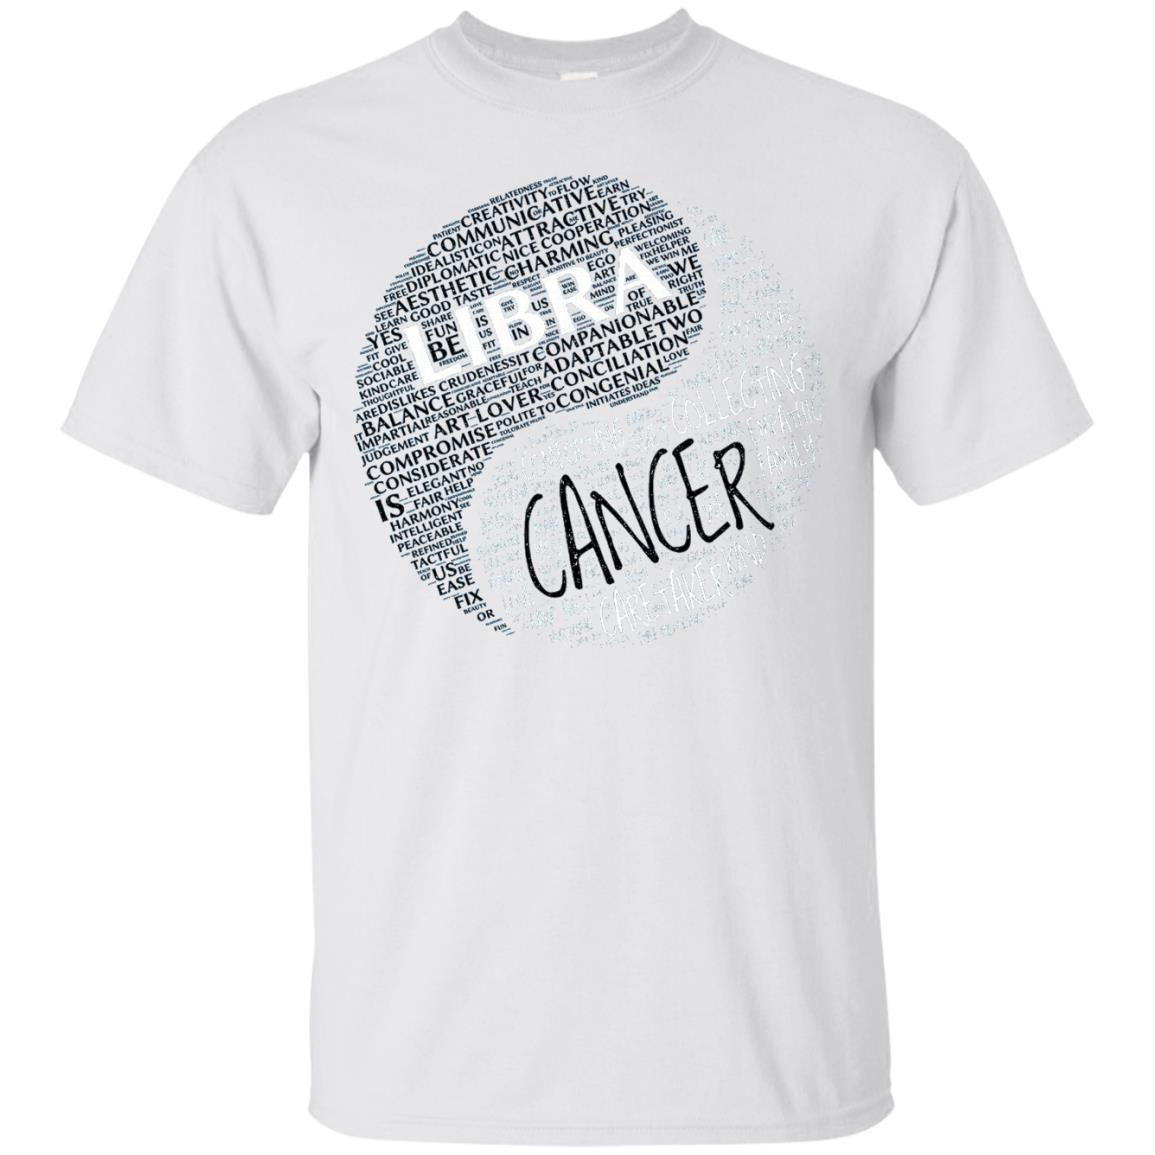 Zodiac Facts Shirt for Men & Women Libra and Cancer T-shirt – T-Shirt